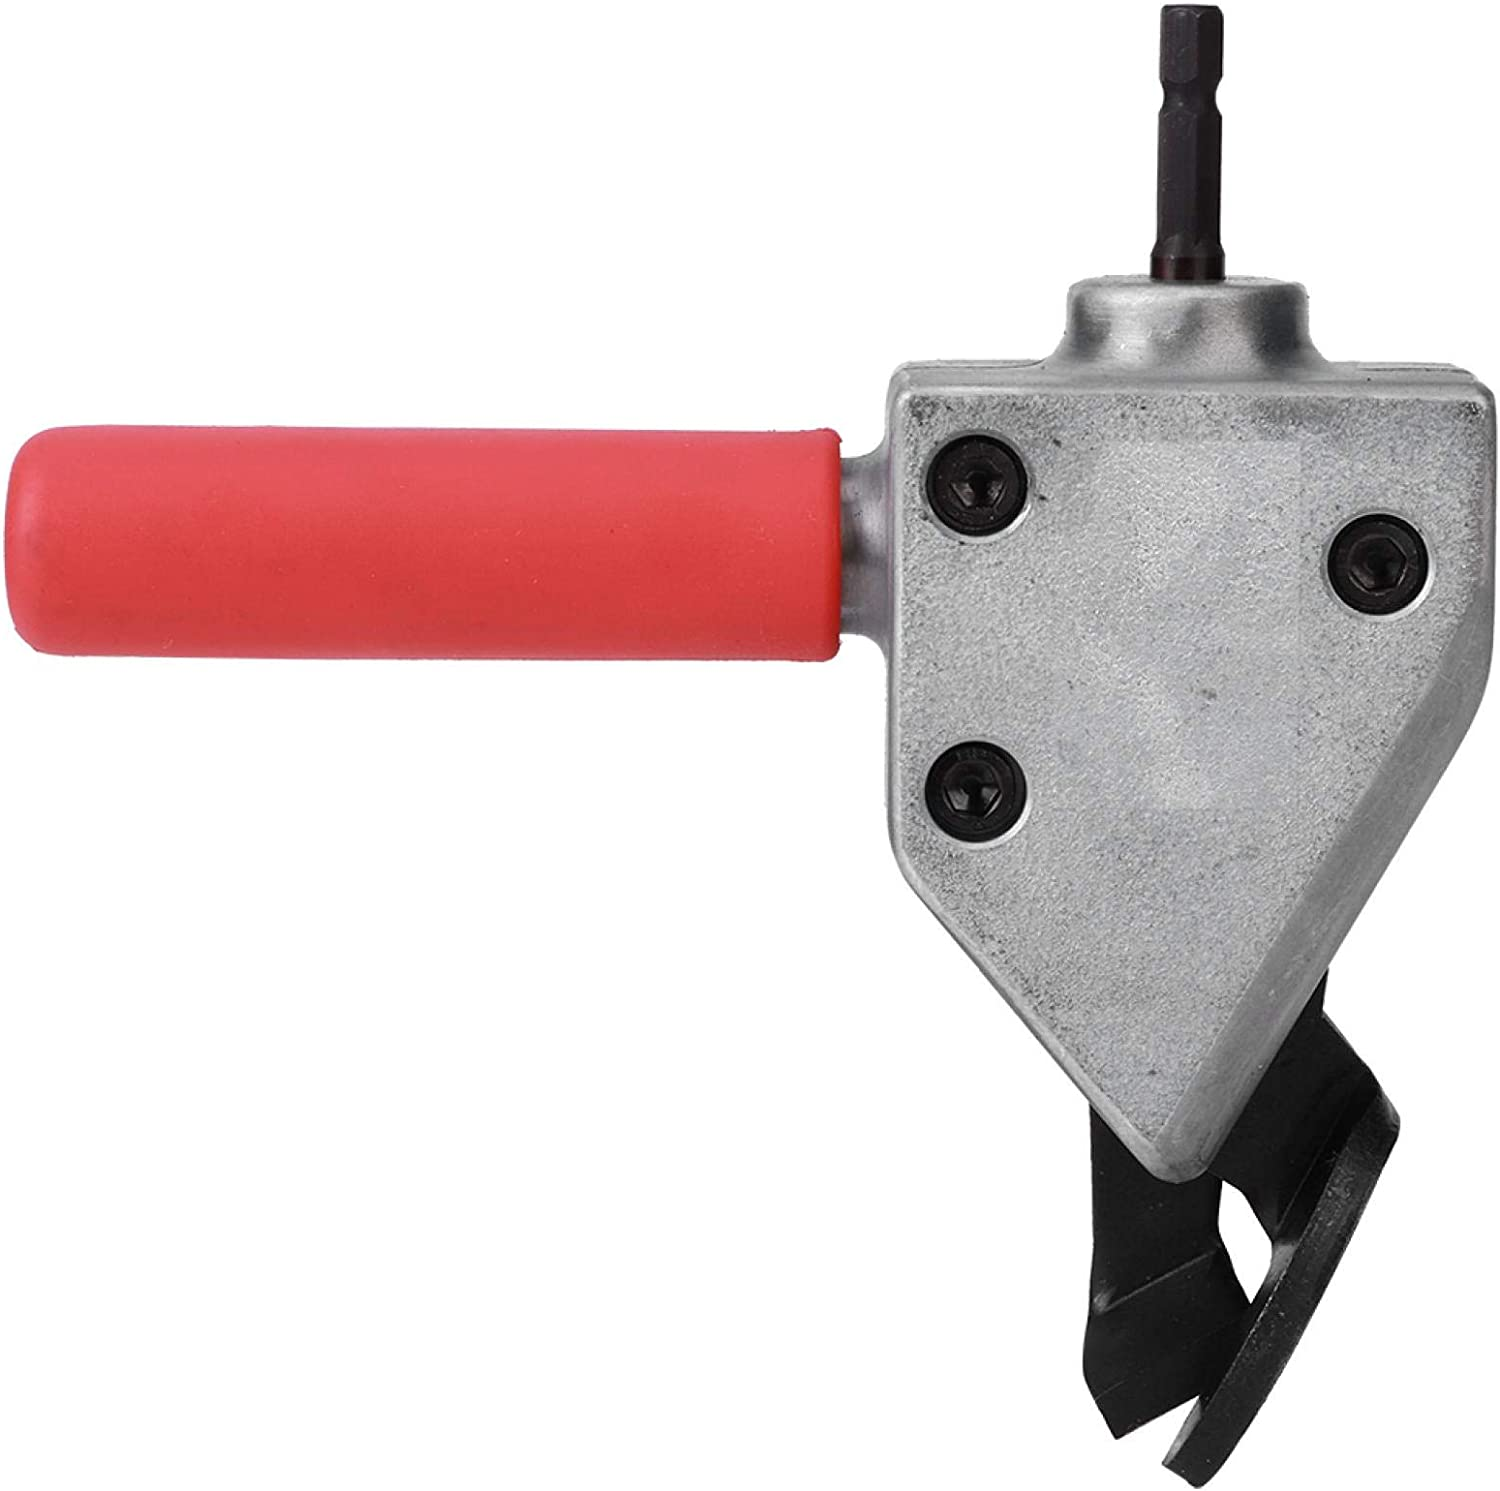 Metal Sheet Cutter Chicago Mall Ranking TOP7 Head Bit Multi‑Functional Electric Drill